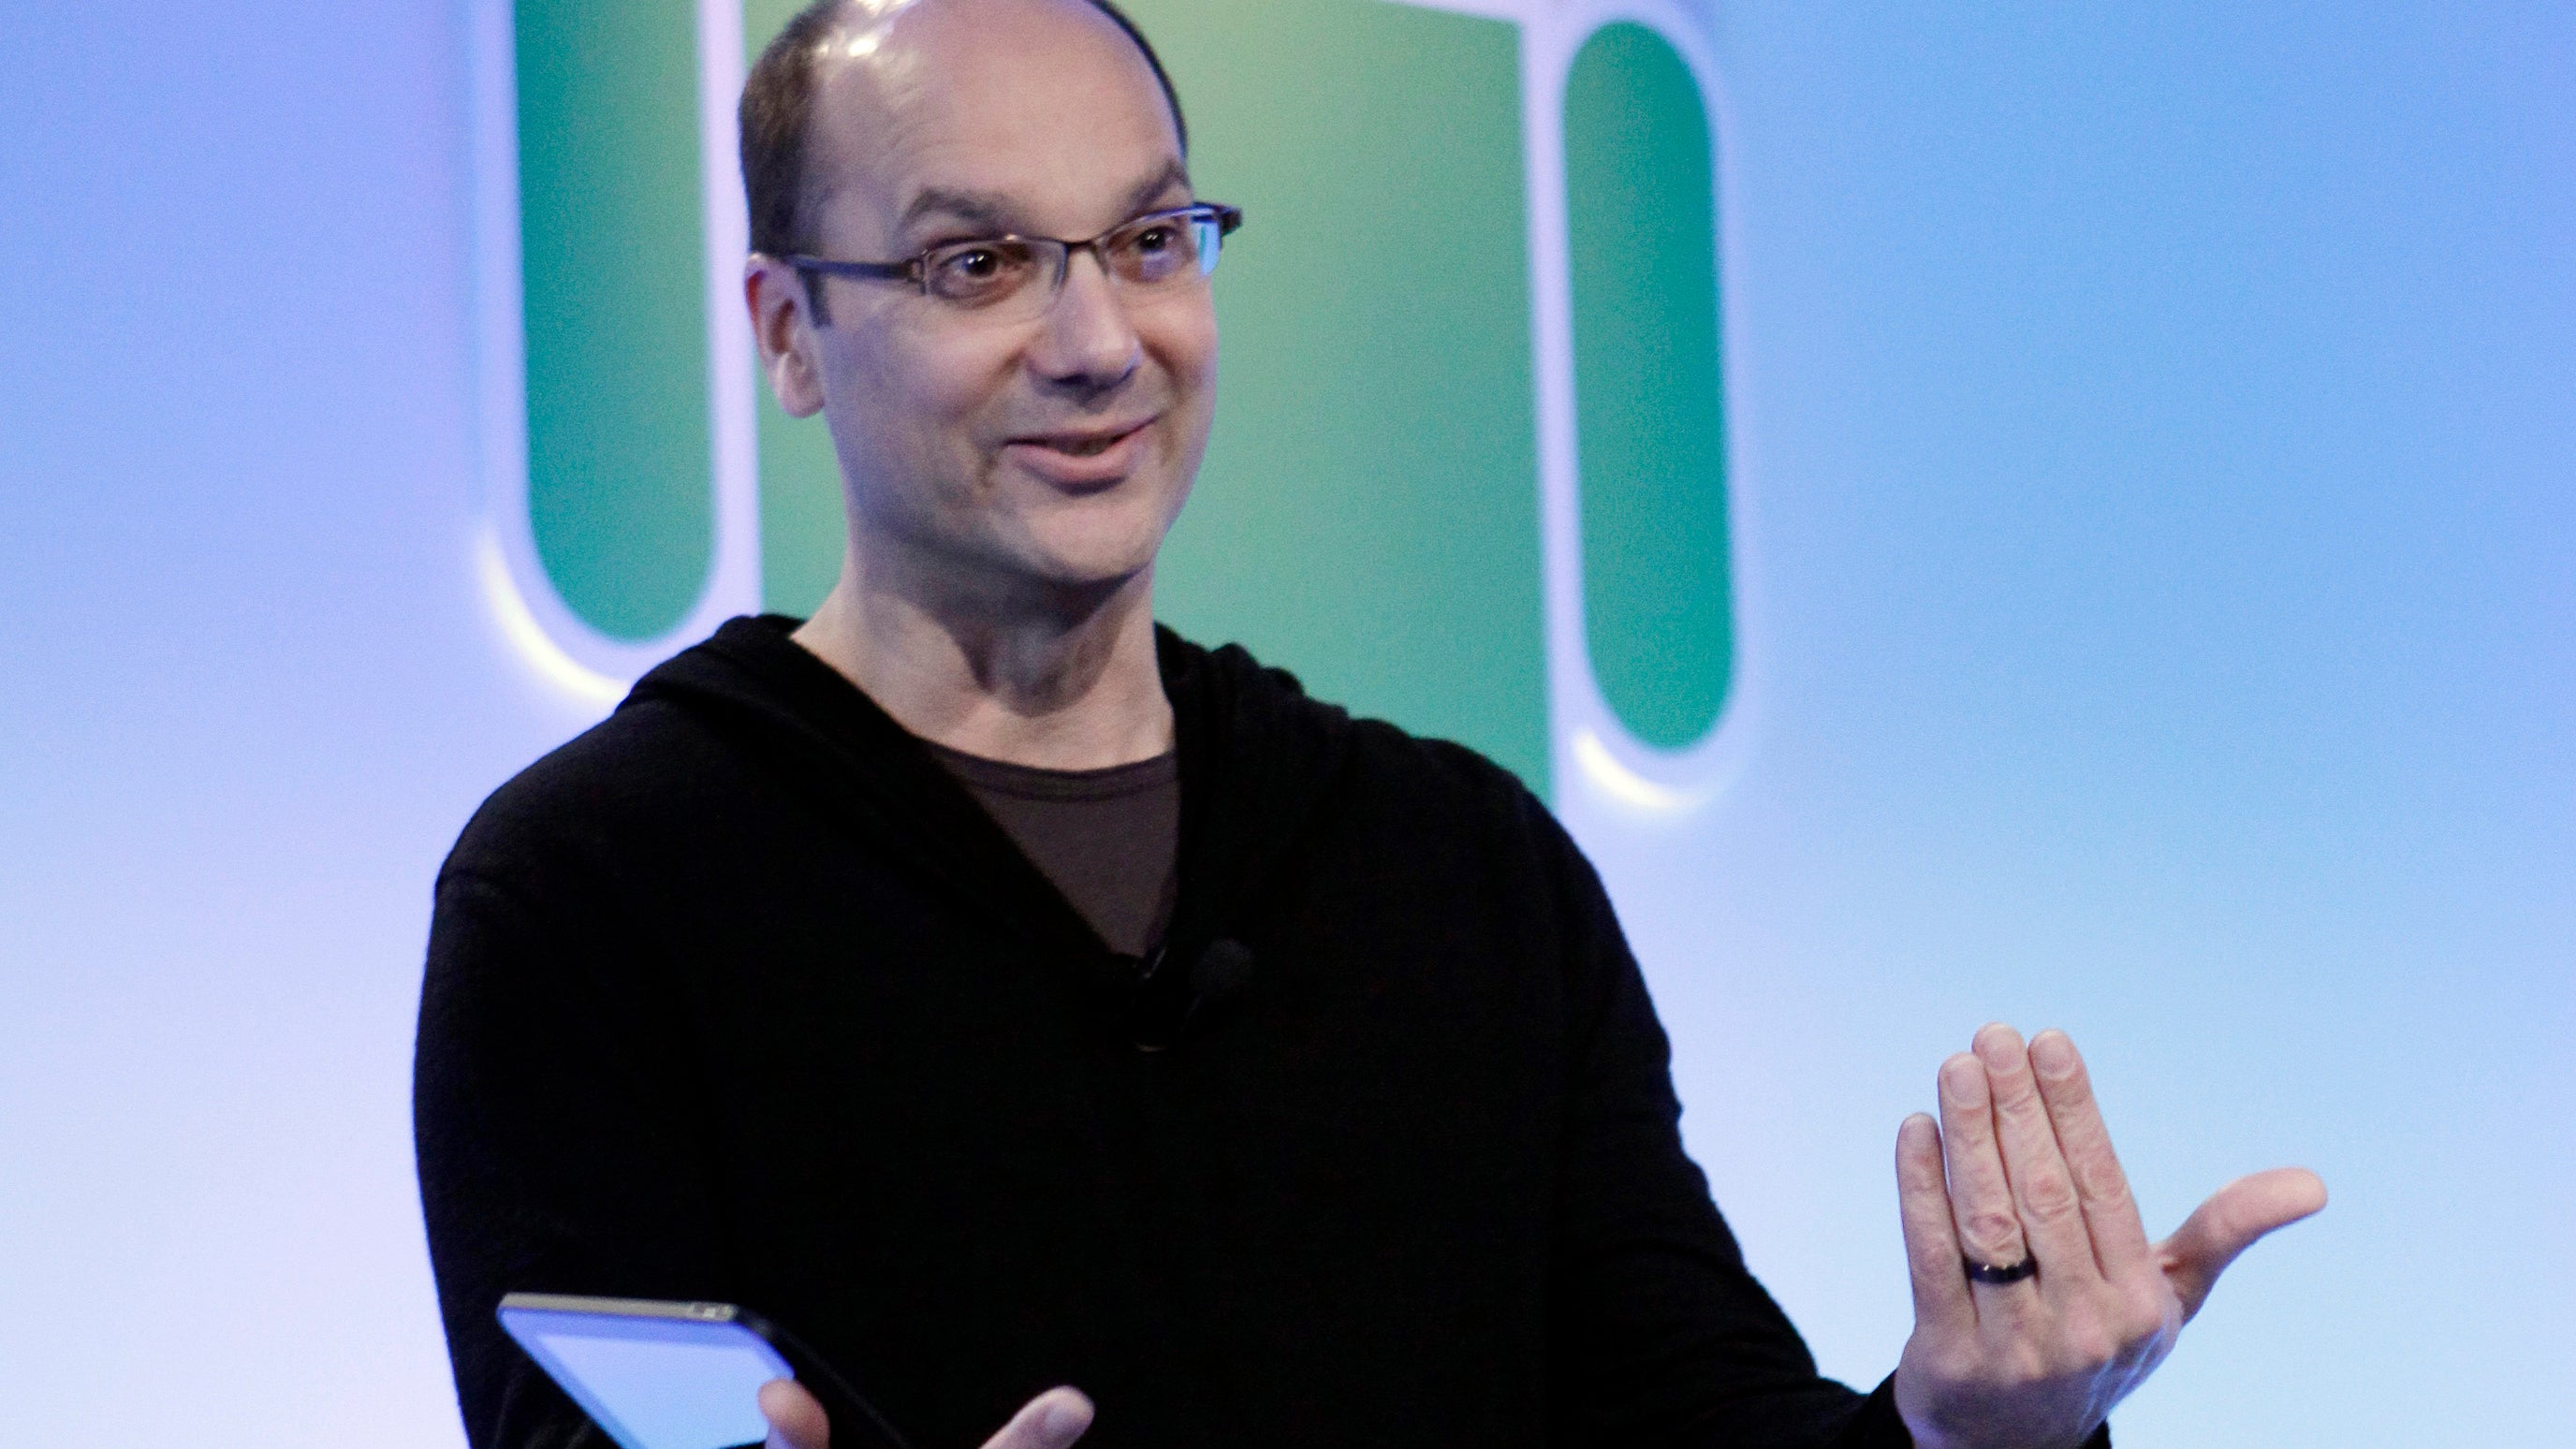 Google Employees Are Furious Over Report That It Shielded Andy Rubin And Other Execs